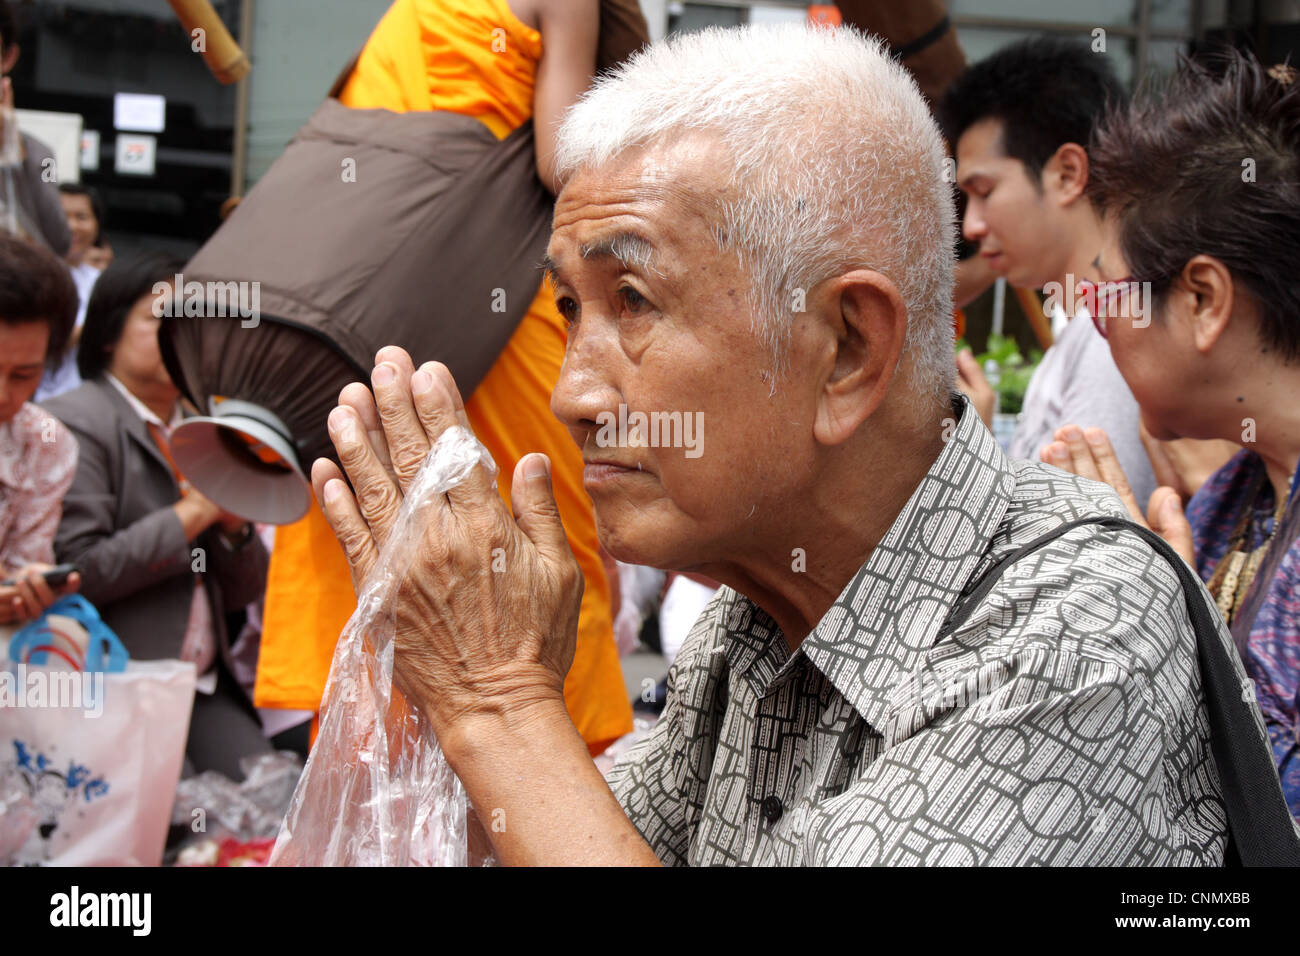 Traditional thai wai stock photos traditional thai wai stock portrait of an old thai man in thai traditional greeting wai stock image kristyandbryce Images